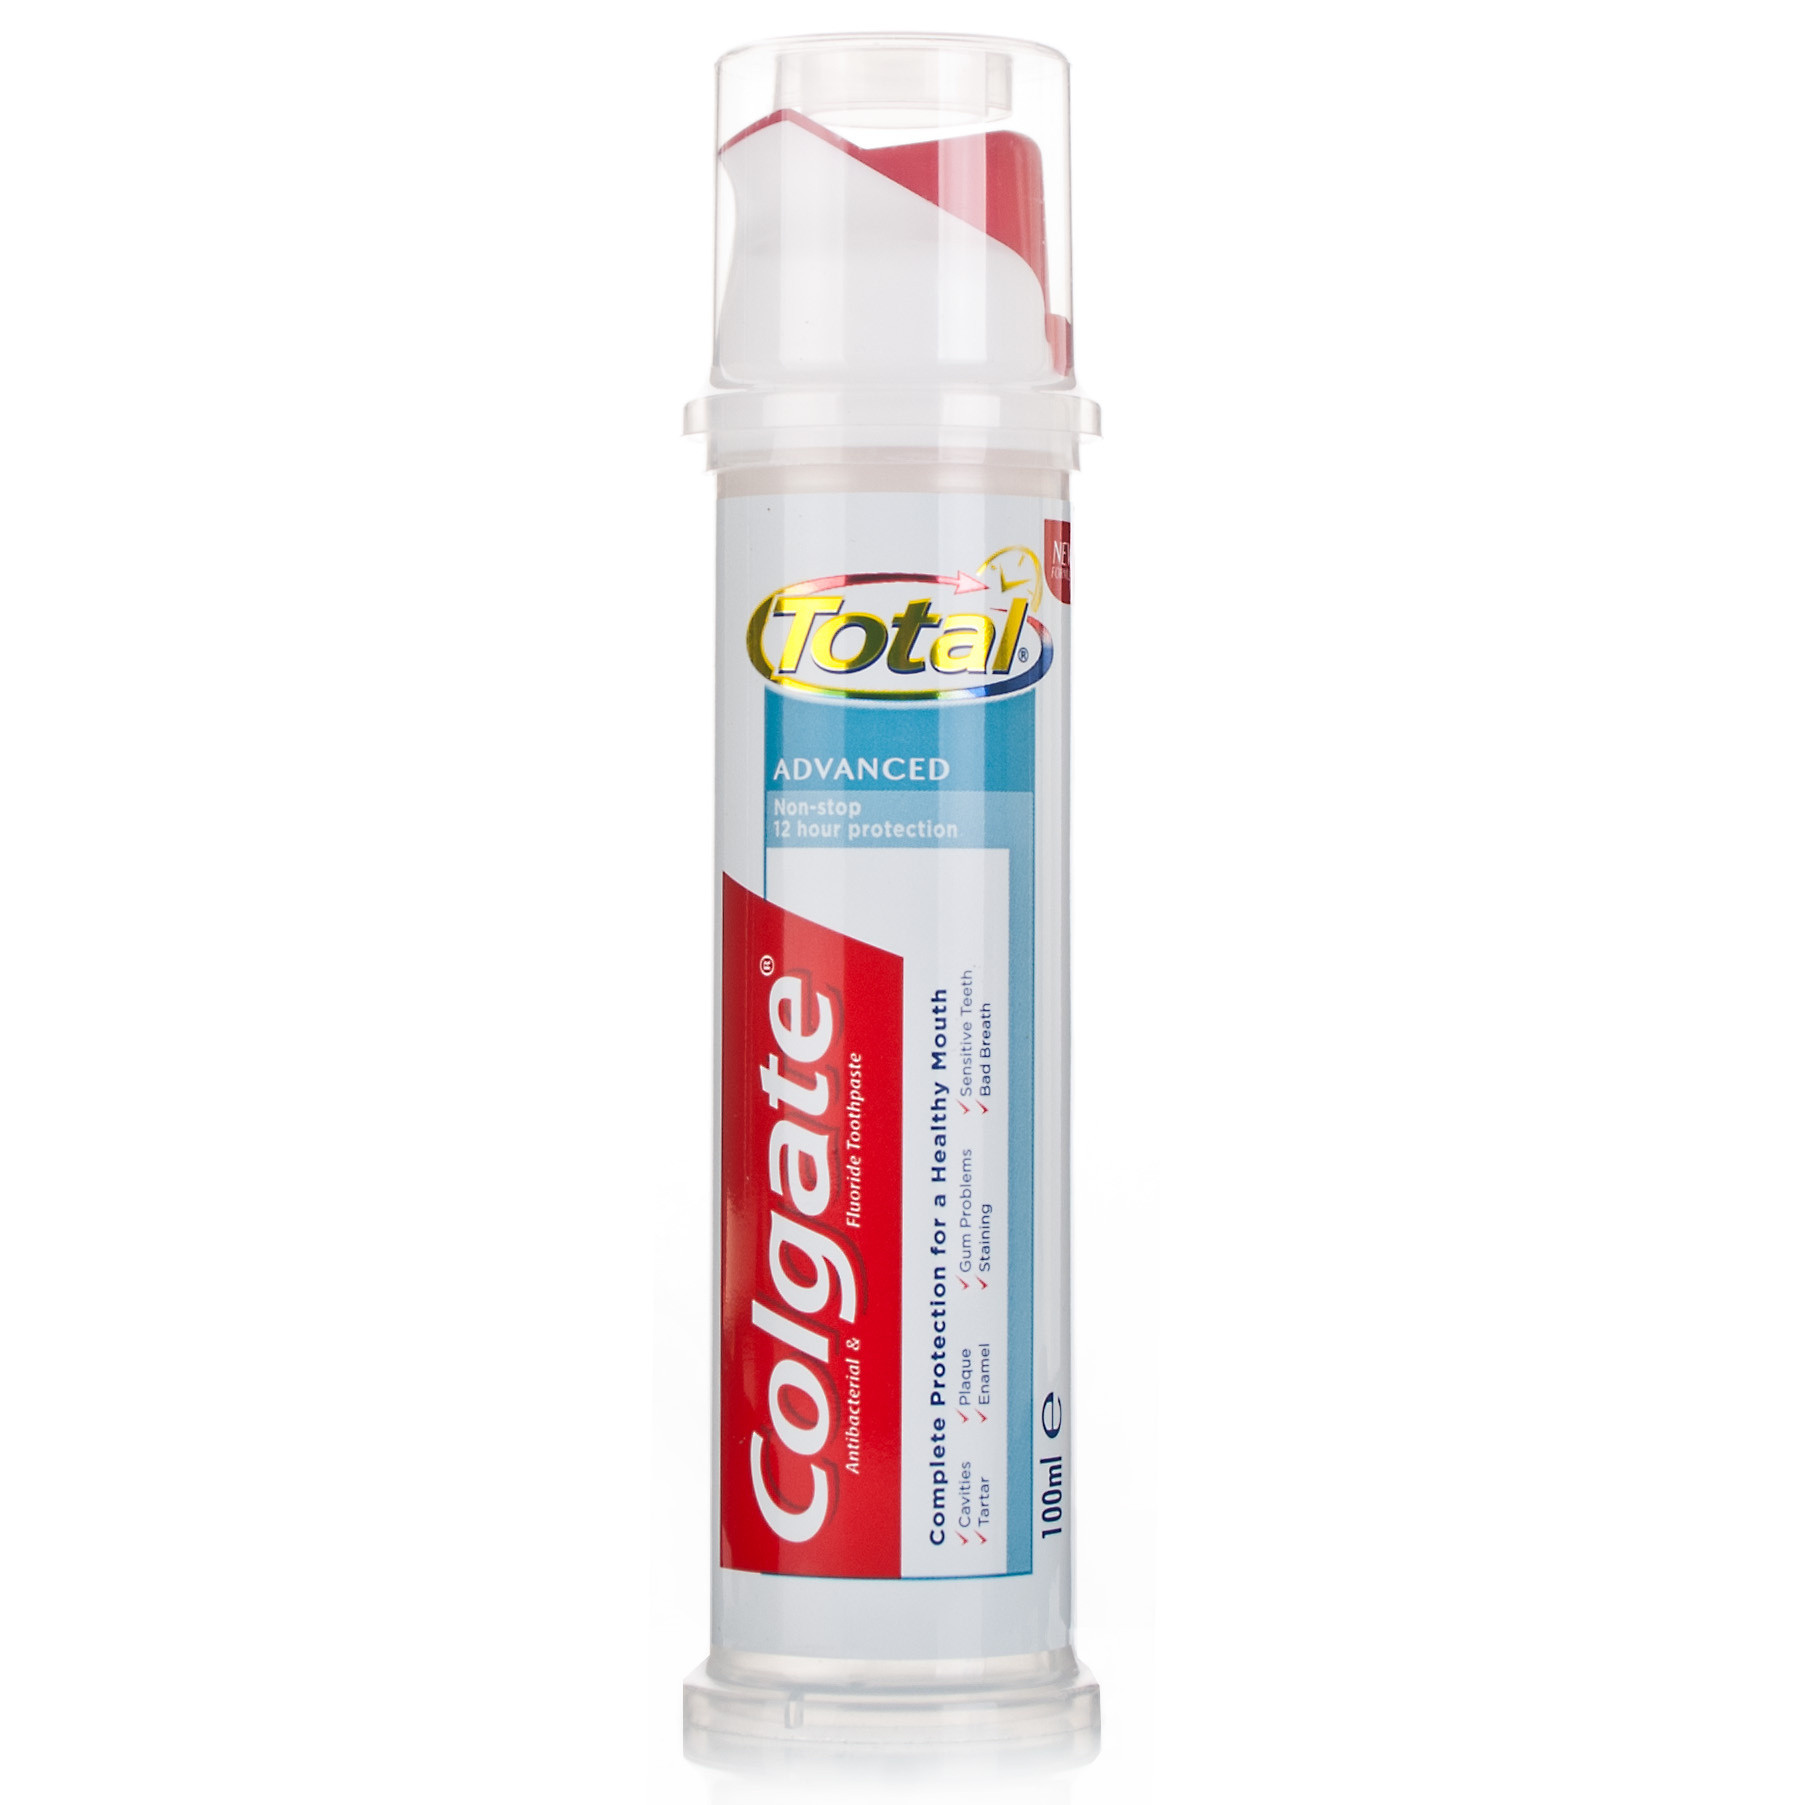 Colgate Total Toothpaste Pump